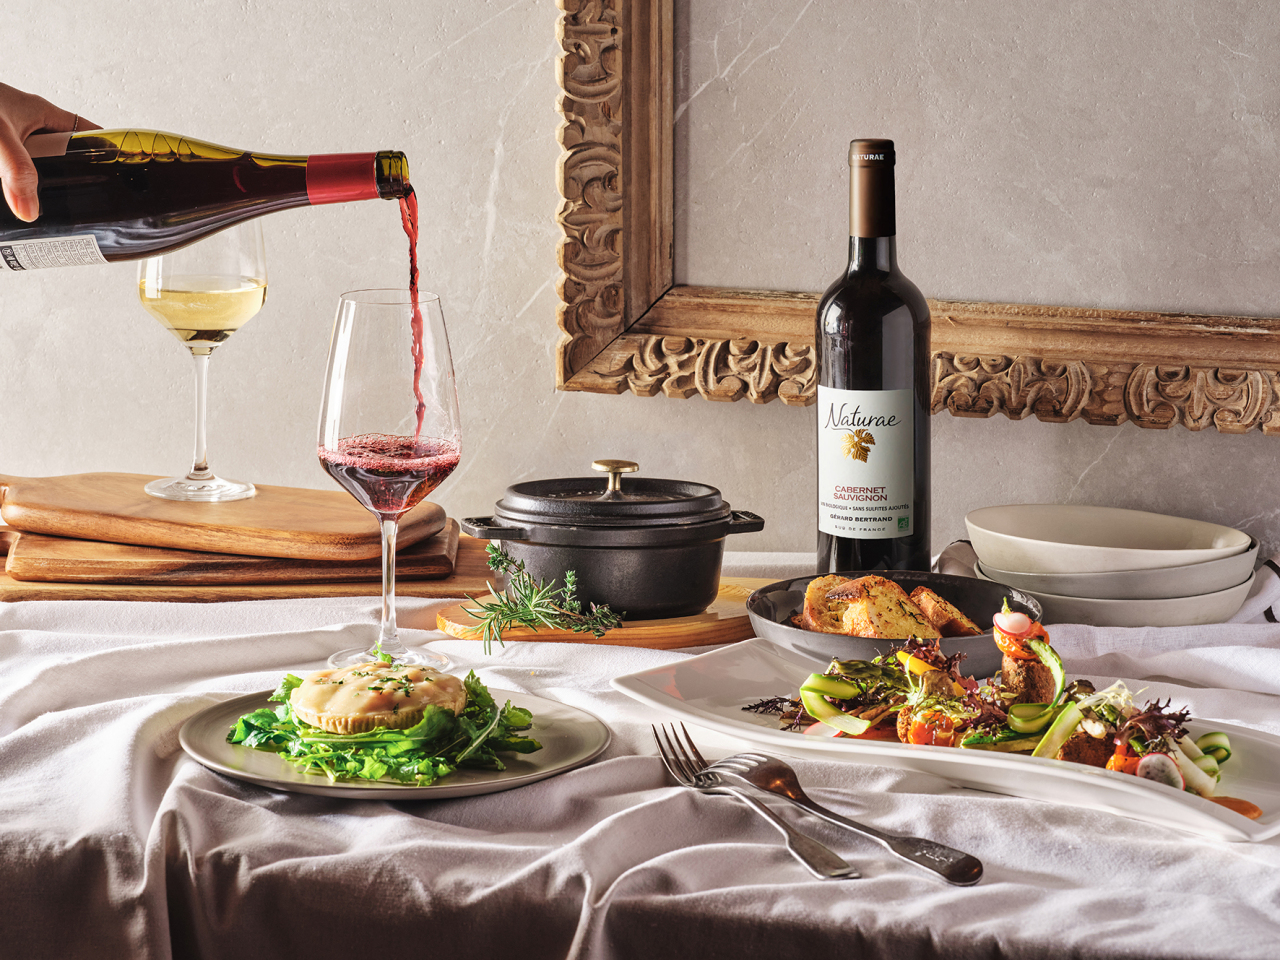 Grand InterContinental Seoul Parnas offers vegan wine and pairings at its Lobby Lounge & Bar. (Grand InterContinental Seoul Parnas)